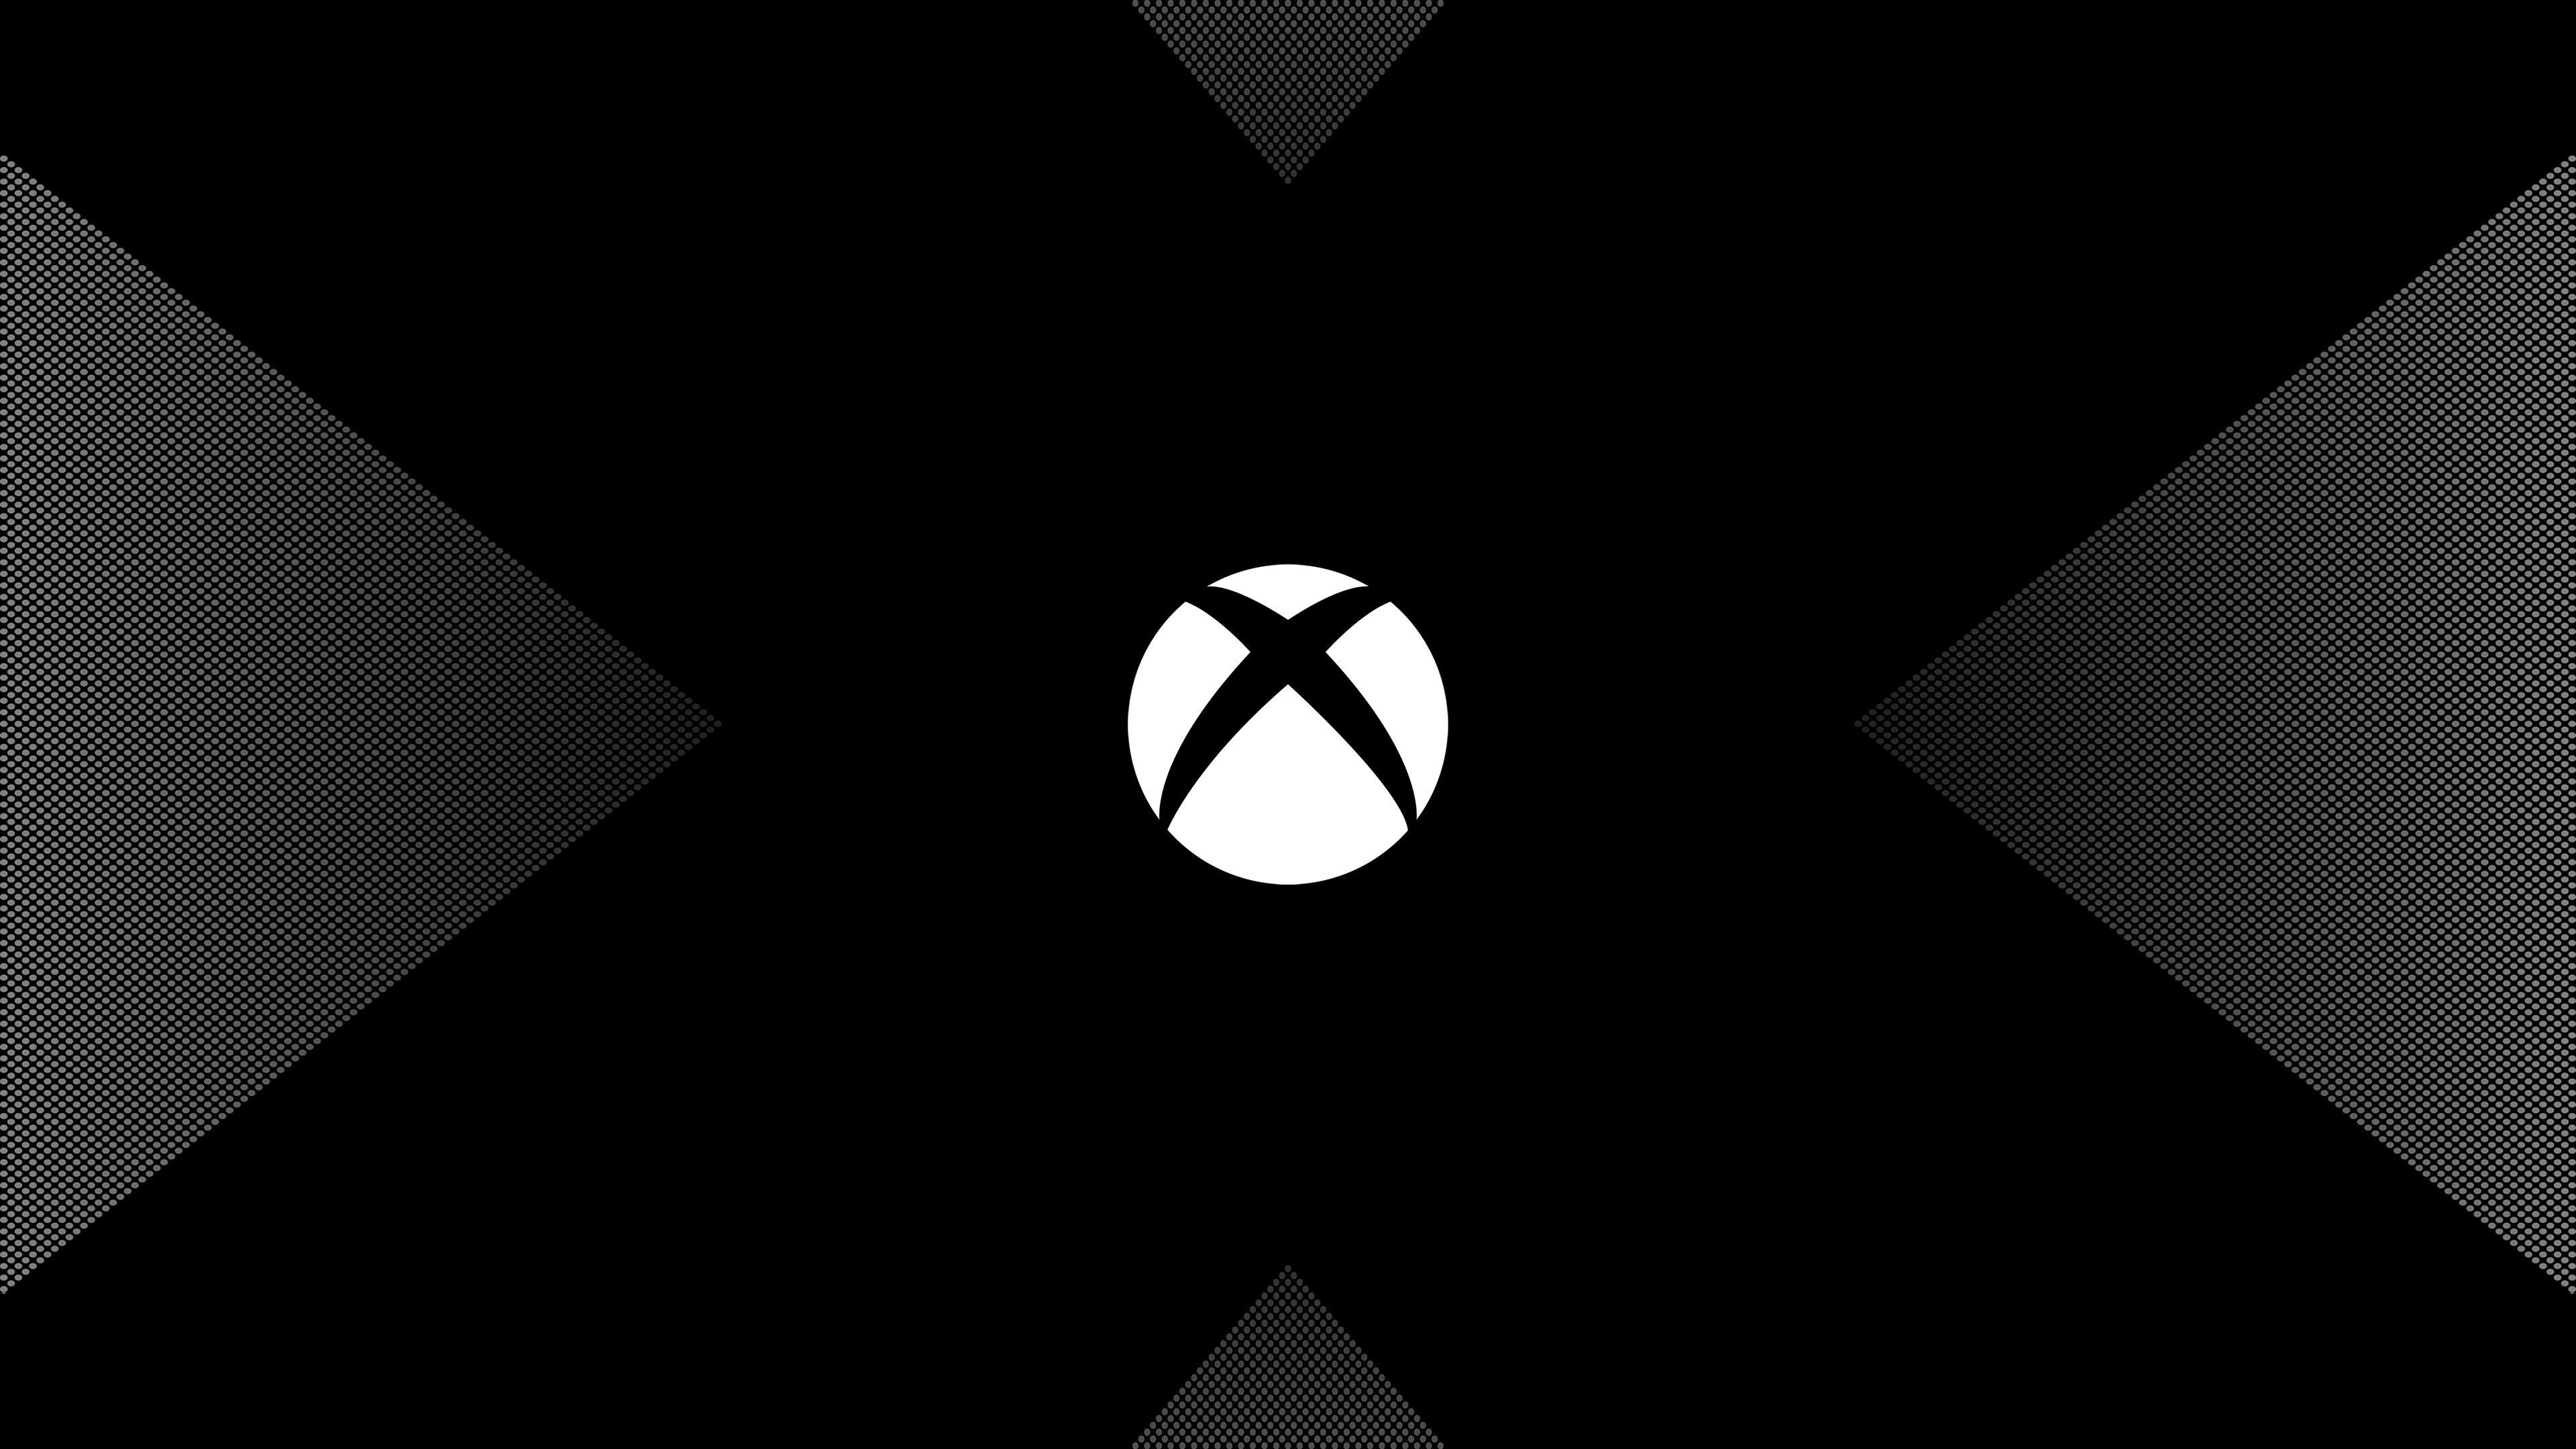 xbox 360 logo wallpaper (69+ images)